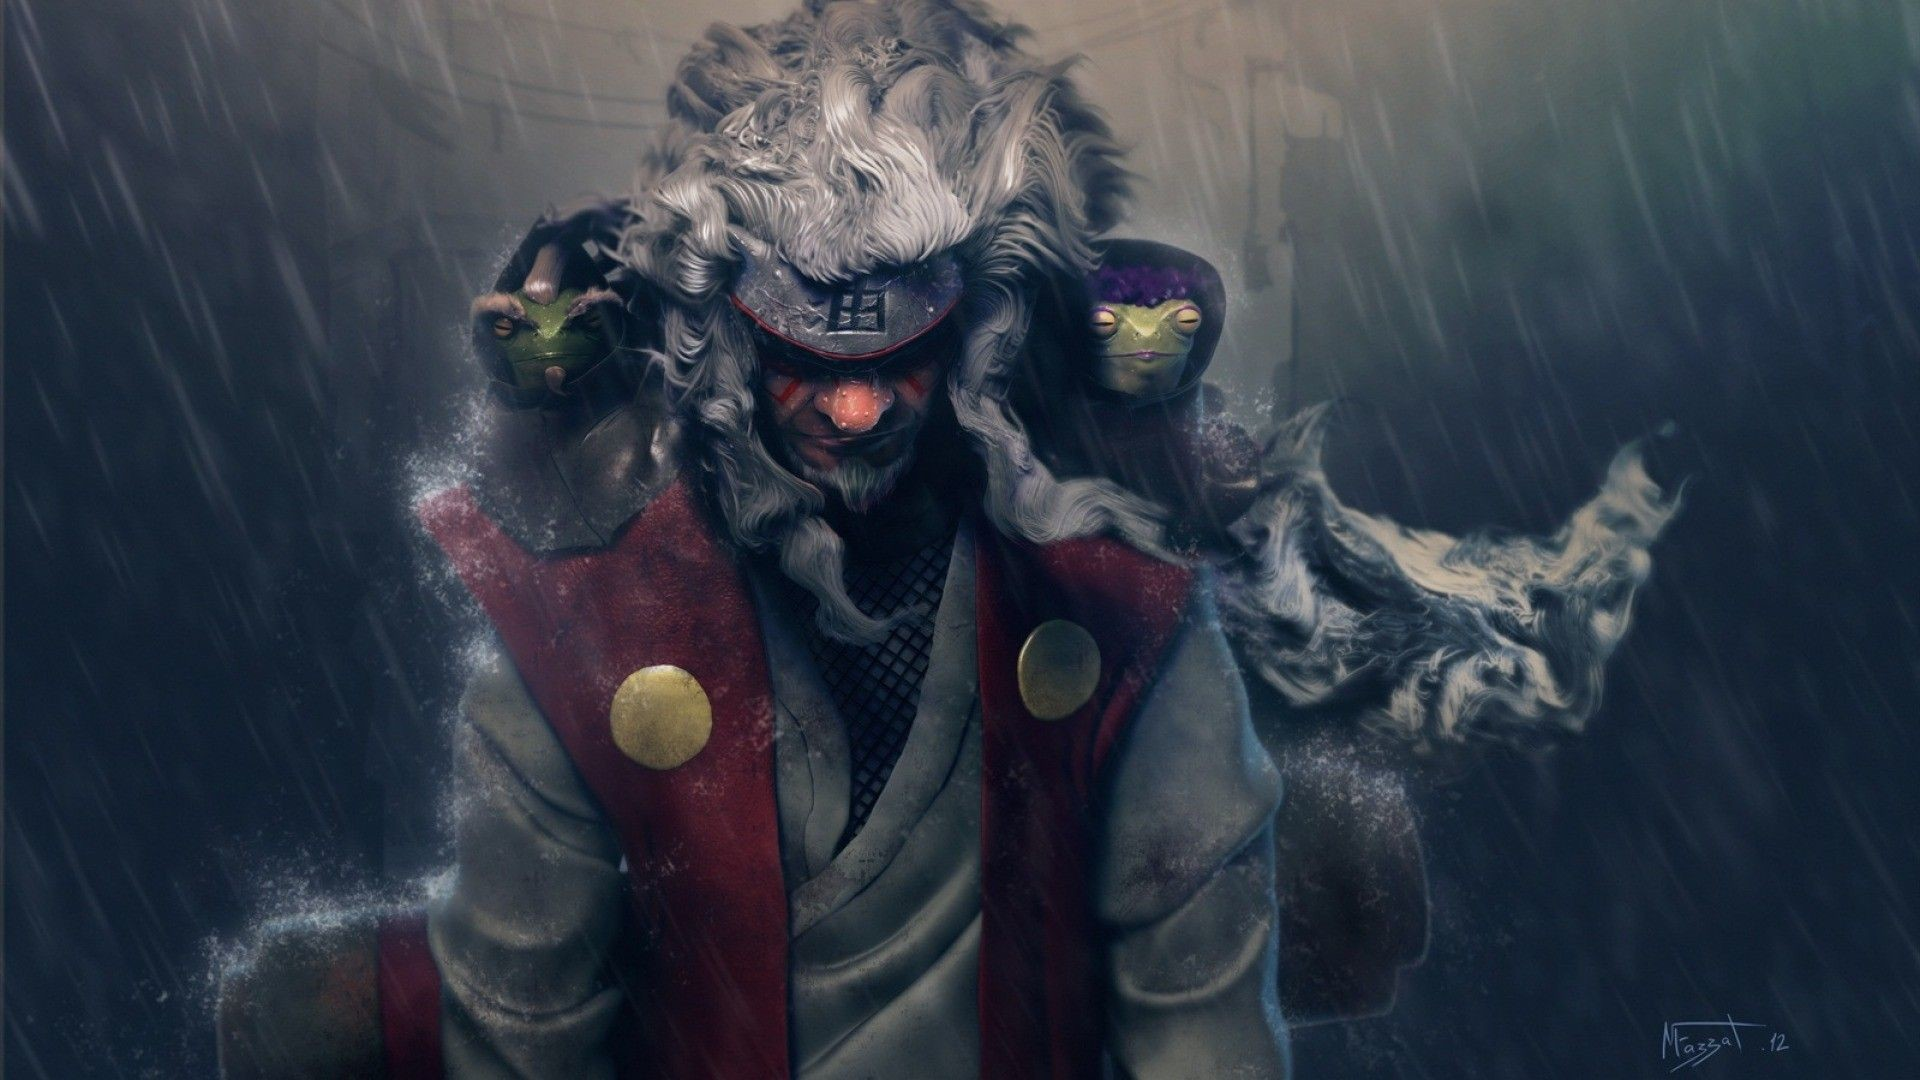 Best wallpaper gallery with Jiraiya Fan Art – Naruto Wallpaper x and HD  wallpapers. We collected full High Quality pictures and wallpapers for your  PC, …